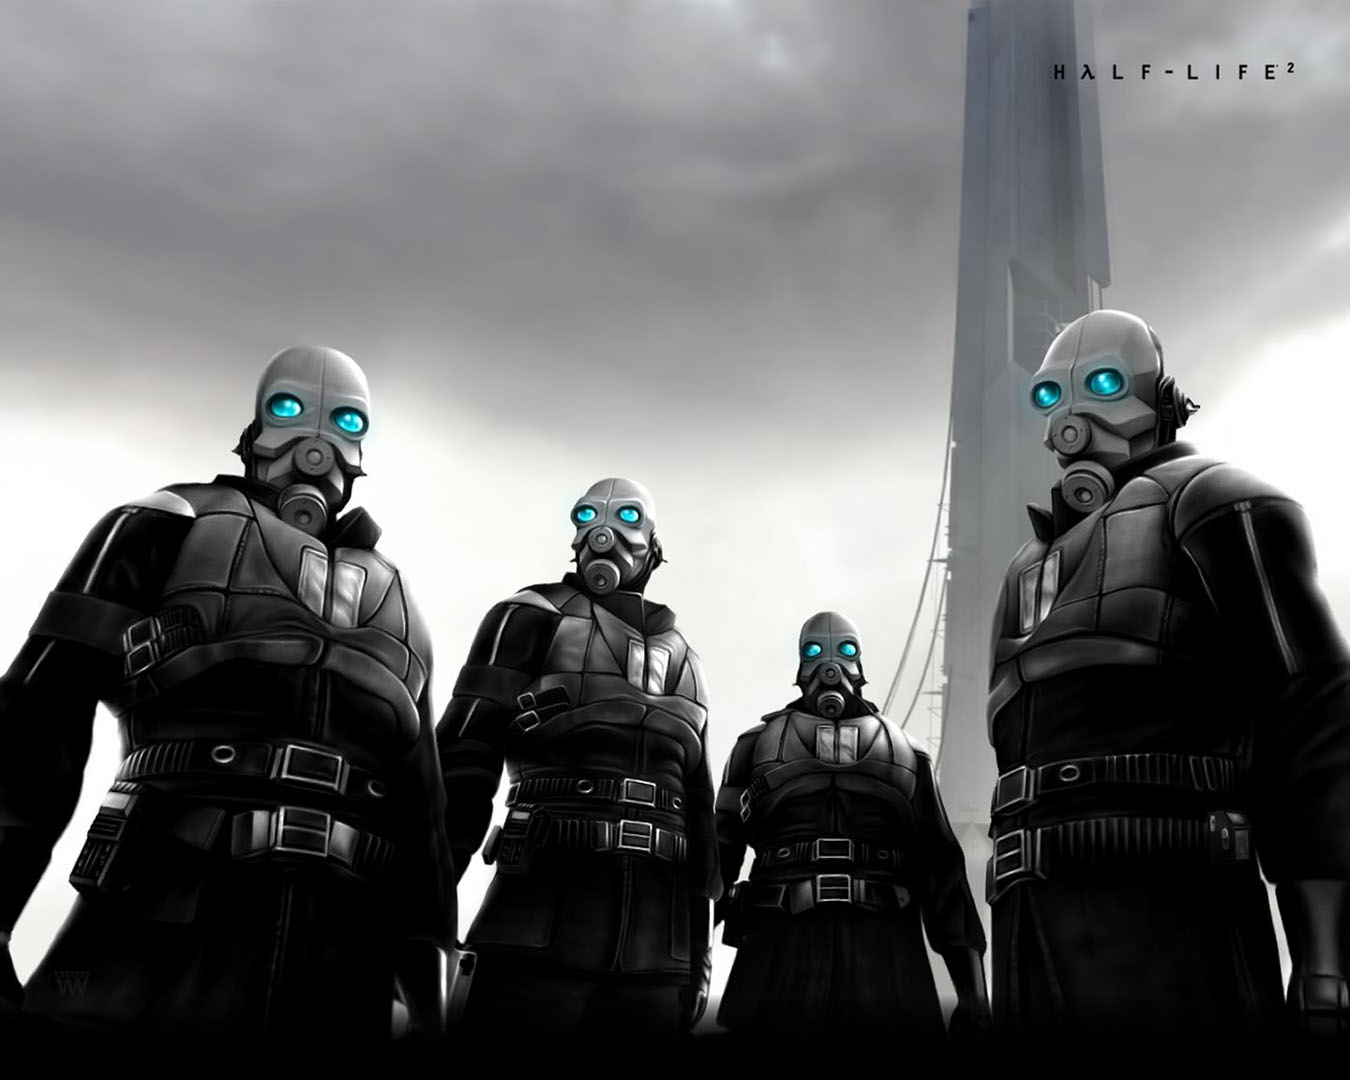 Half Life 2 Combine Wallpaper: Combine Police Hanging Out At The Citadel